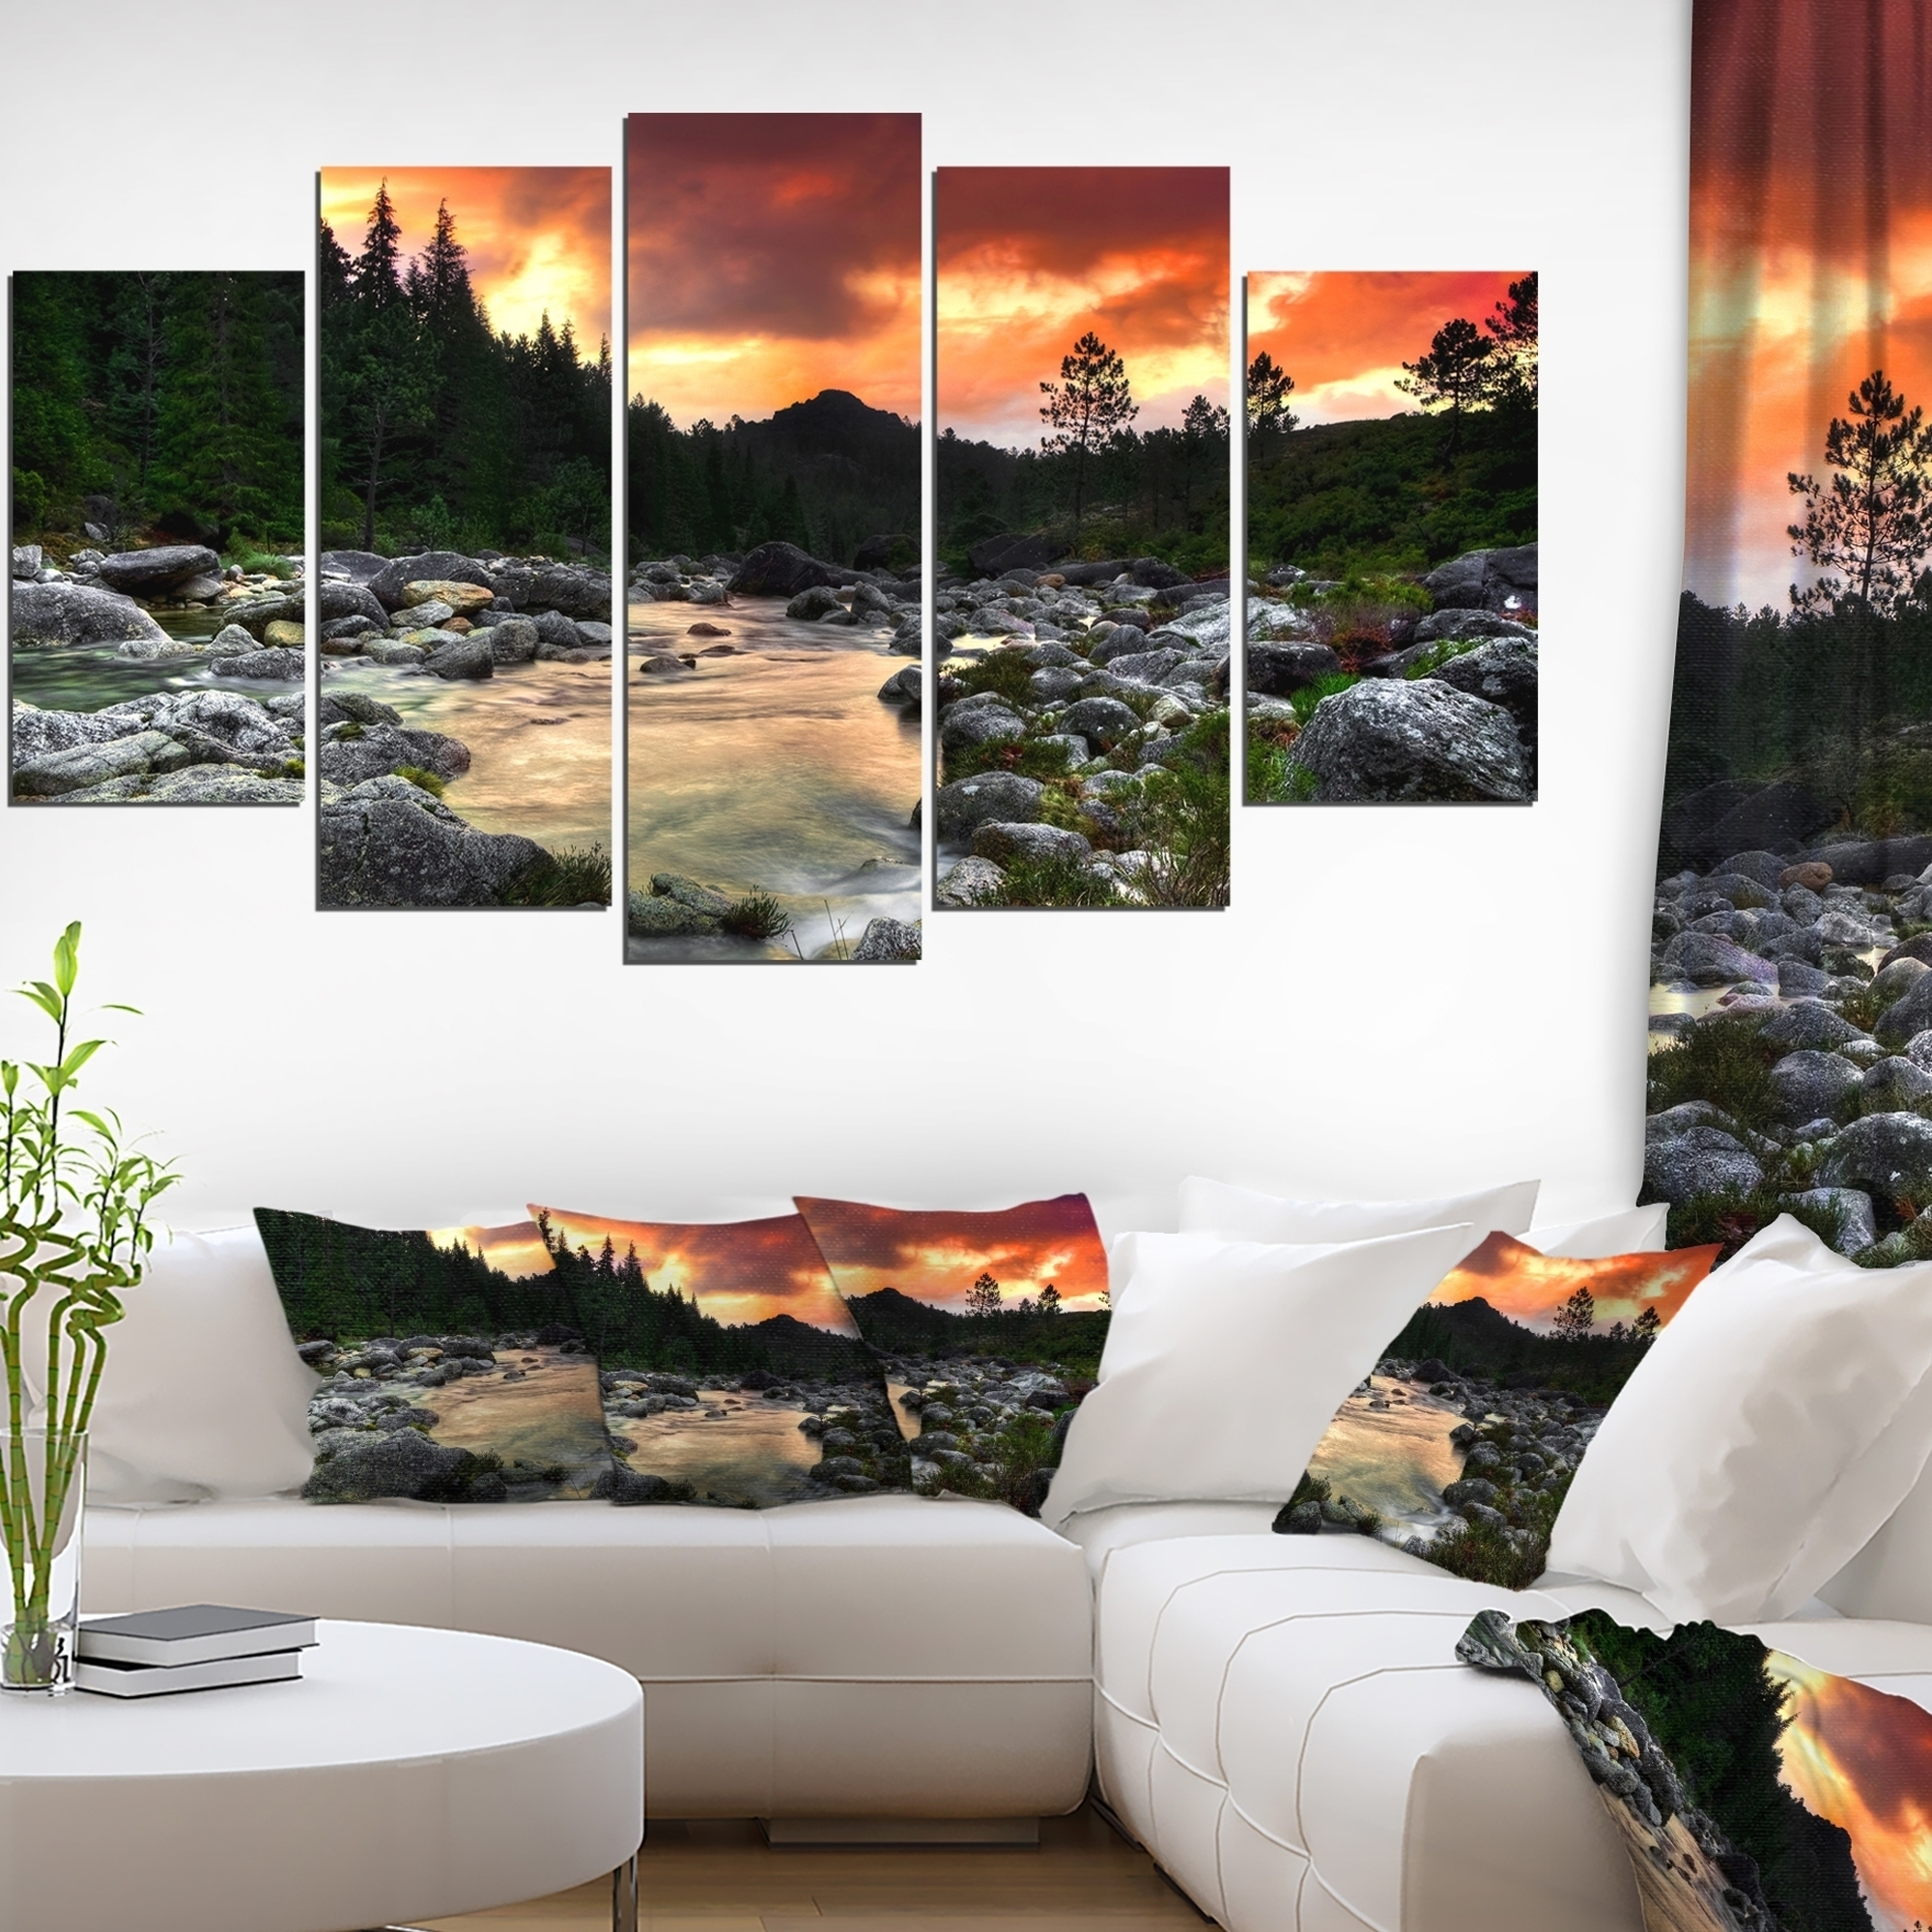 Extra Large Wall Art For Well Known Shop Rocky Mountain River At Sunset – Extra Large Wall Art Landscape (View 12 of 15)